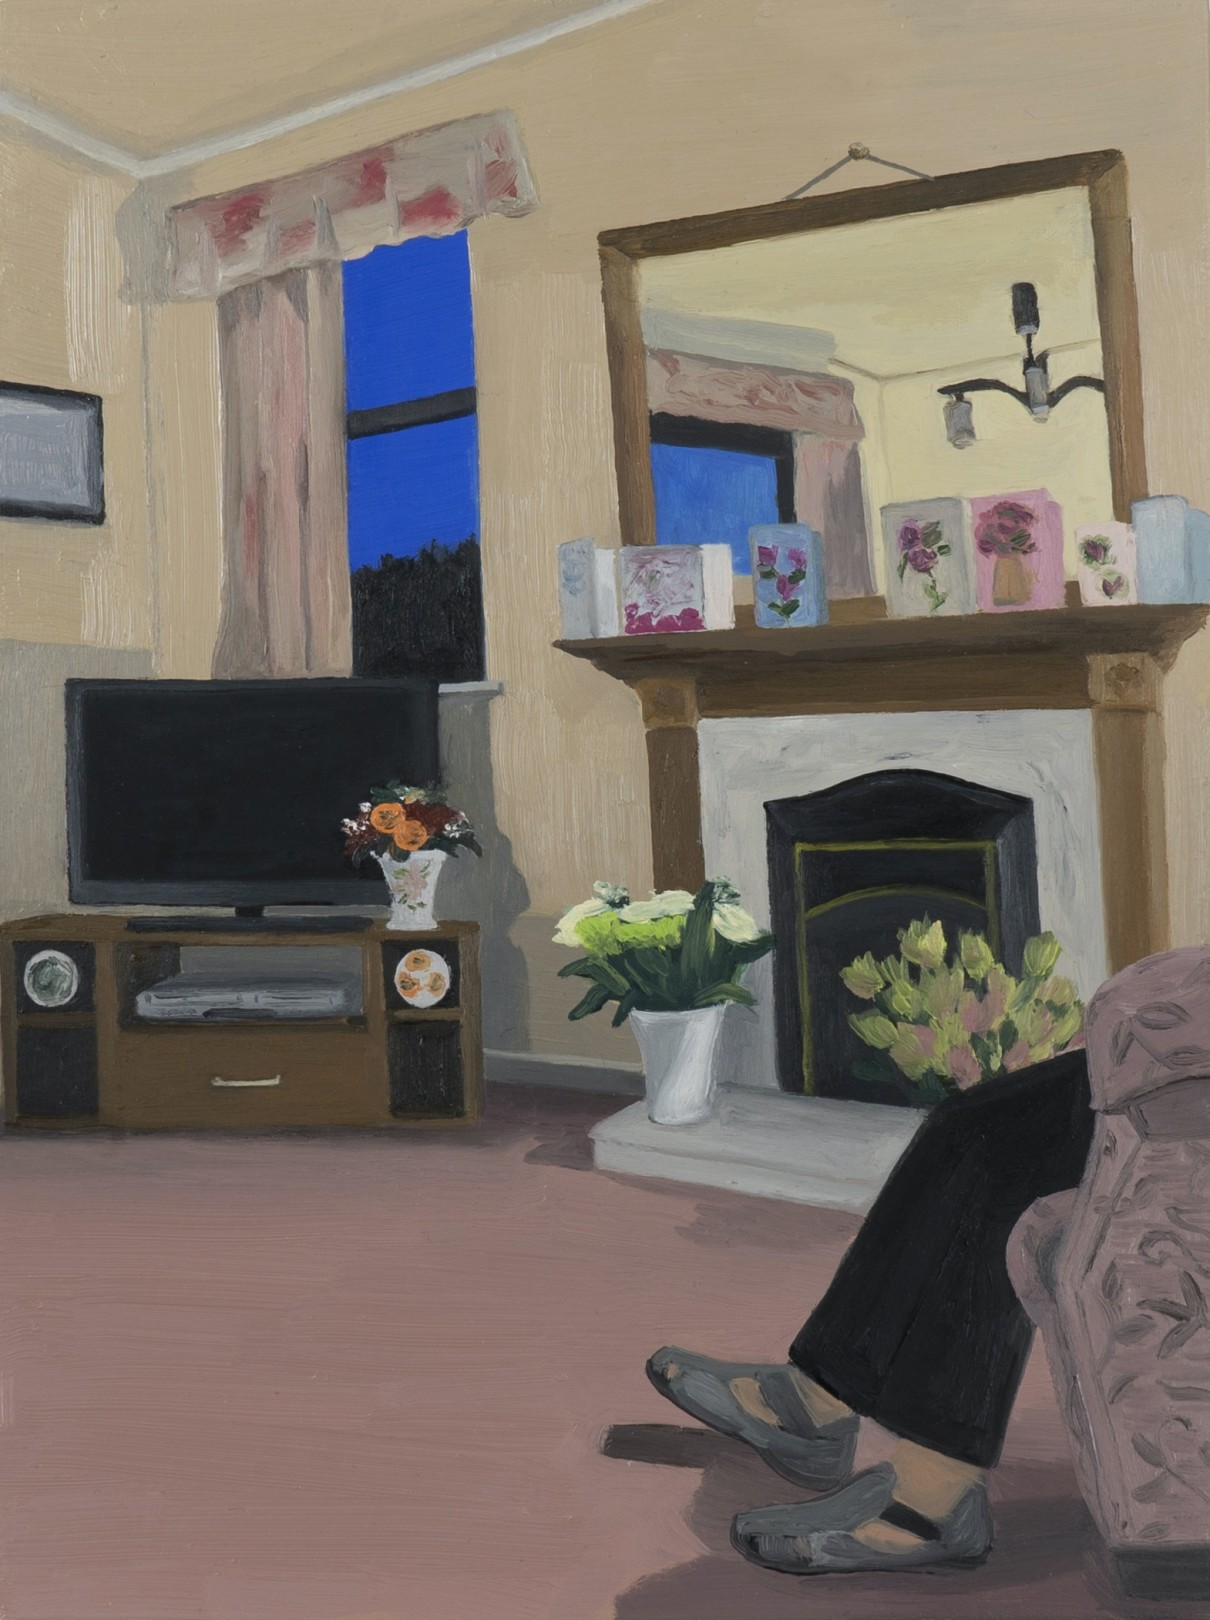 Evie O'Connor Fireplace Display, 2020 Oil on panel 20.5 x 15.5 cm. / 8 x 6 in.